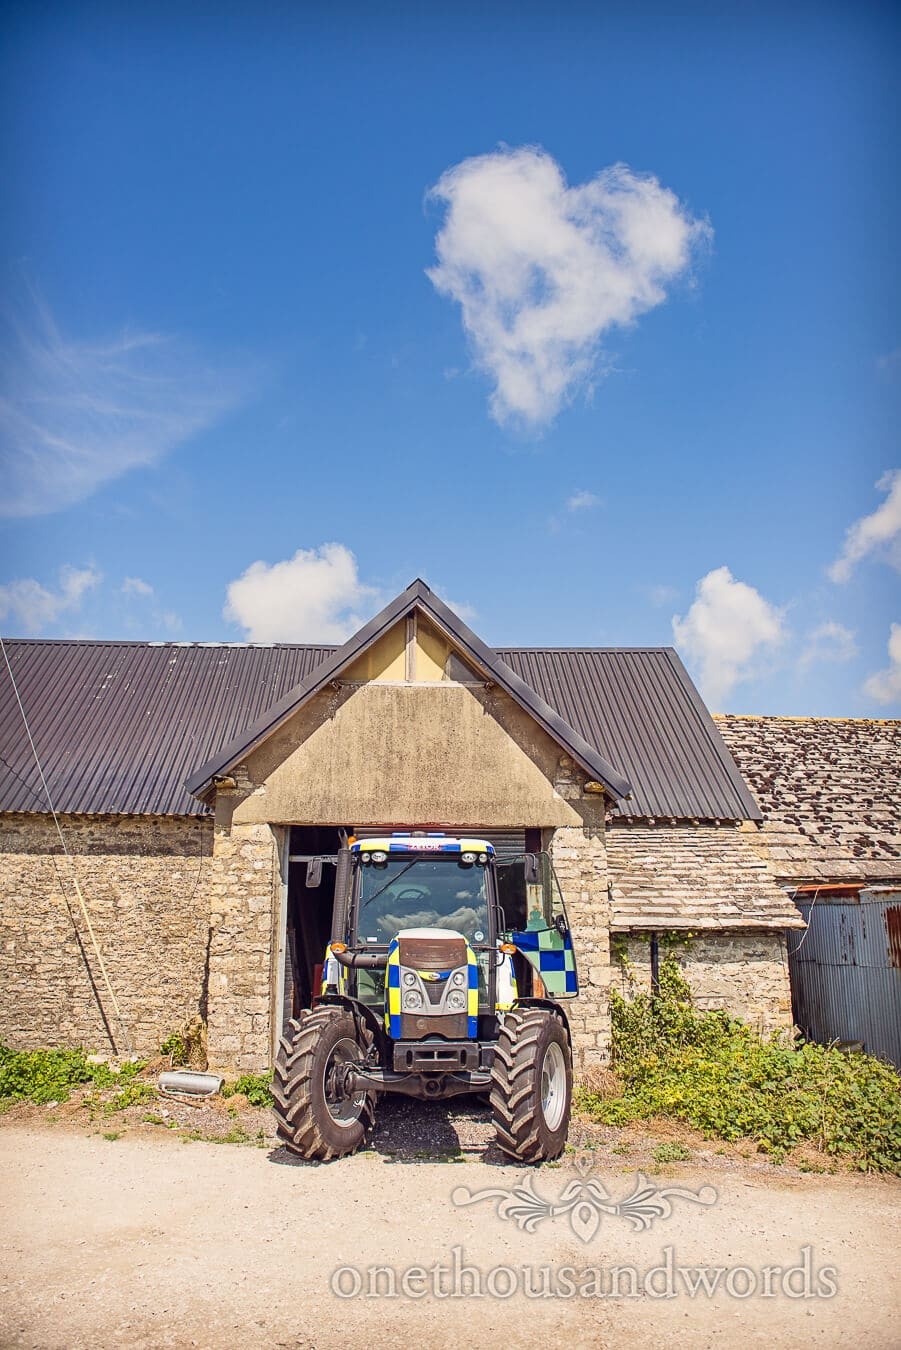 Love heart shaped cloud with police tractor at Dorset home wedding